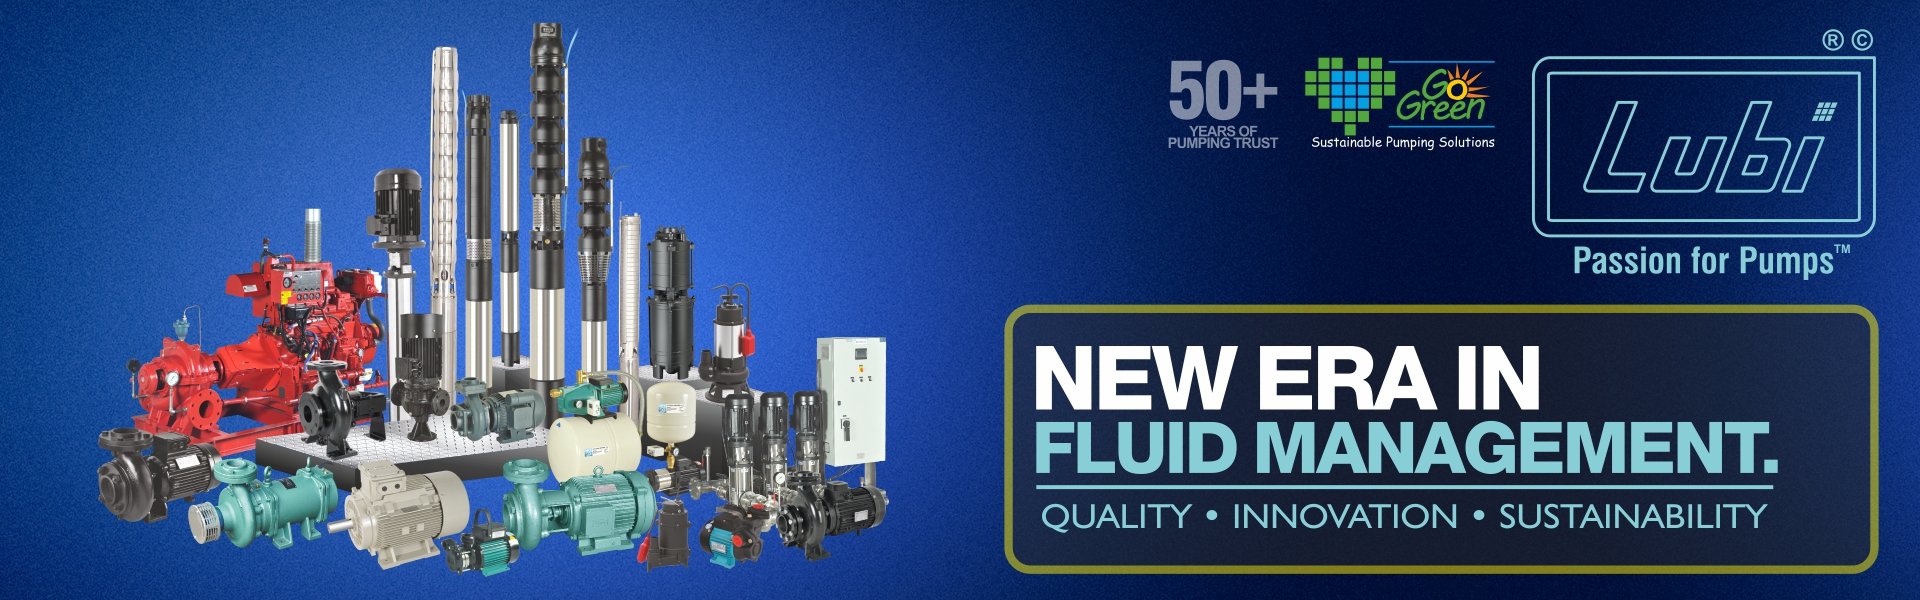 Lubi pumps Products